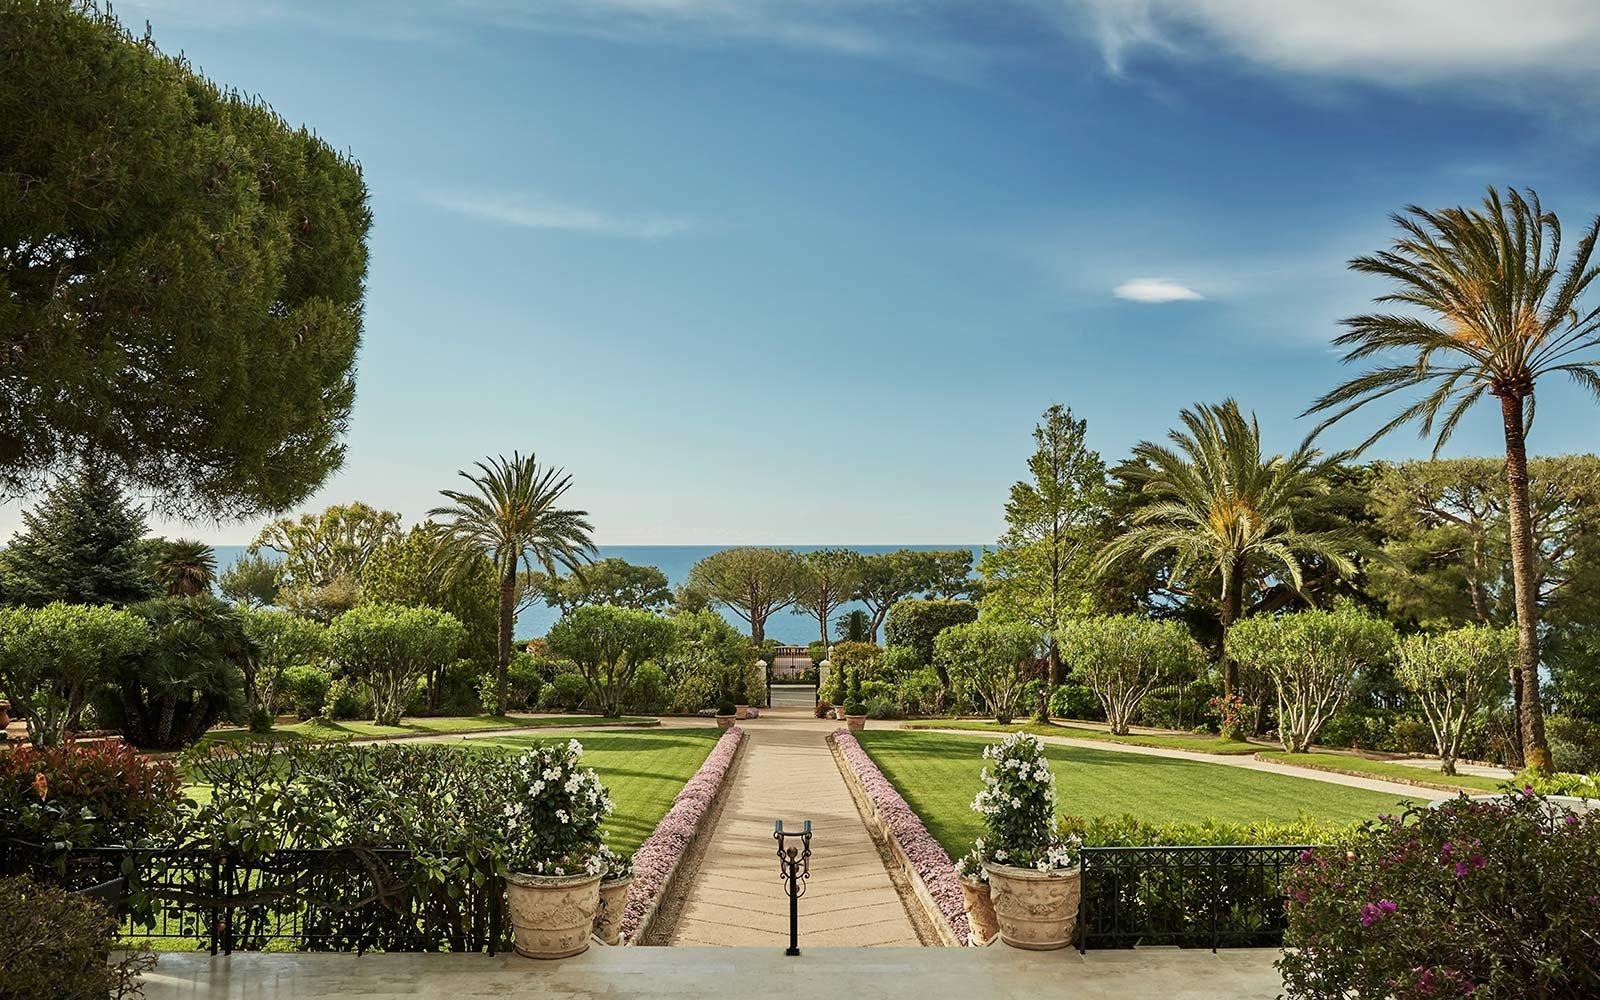 grand-hotel-du-cap-ferrat-a-four-seasons-hotel-lead-RESORTFRANCEWB18.jpg